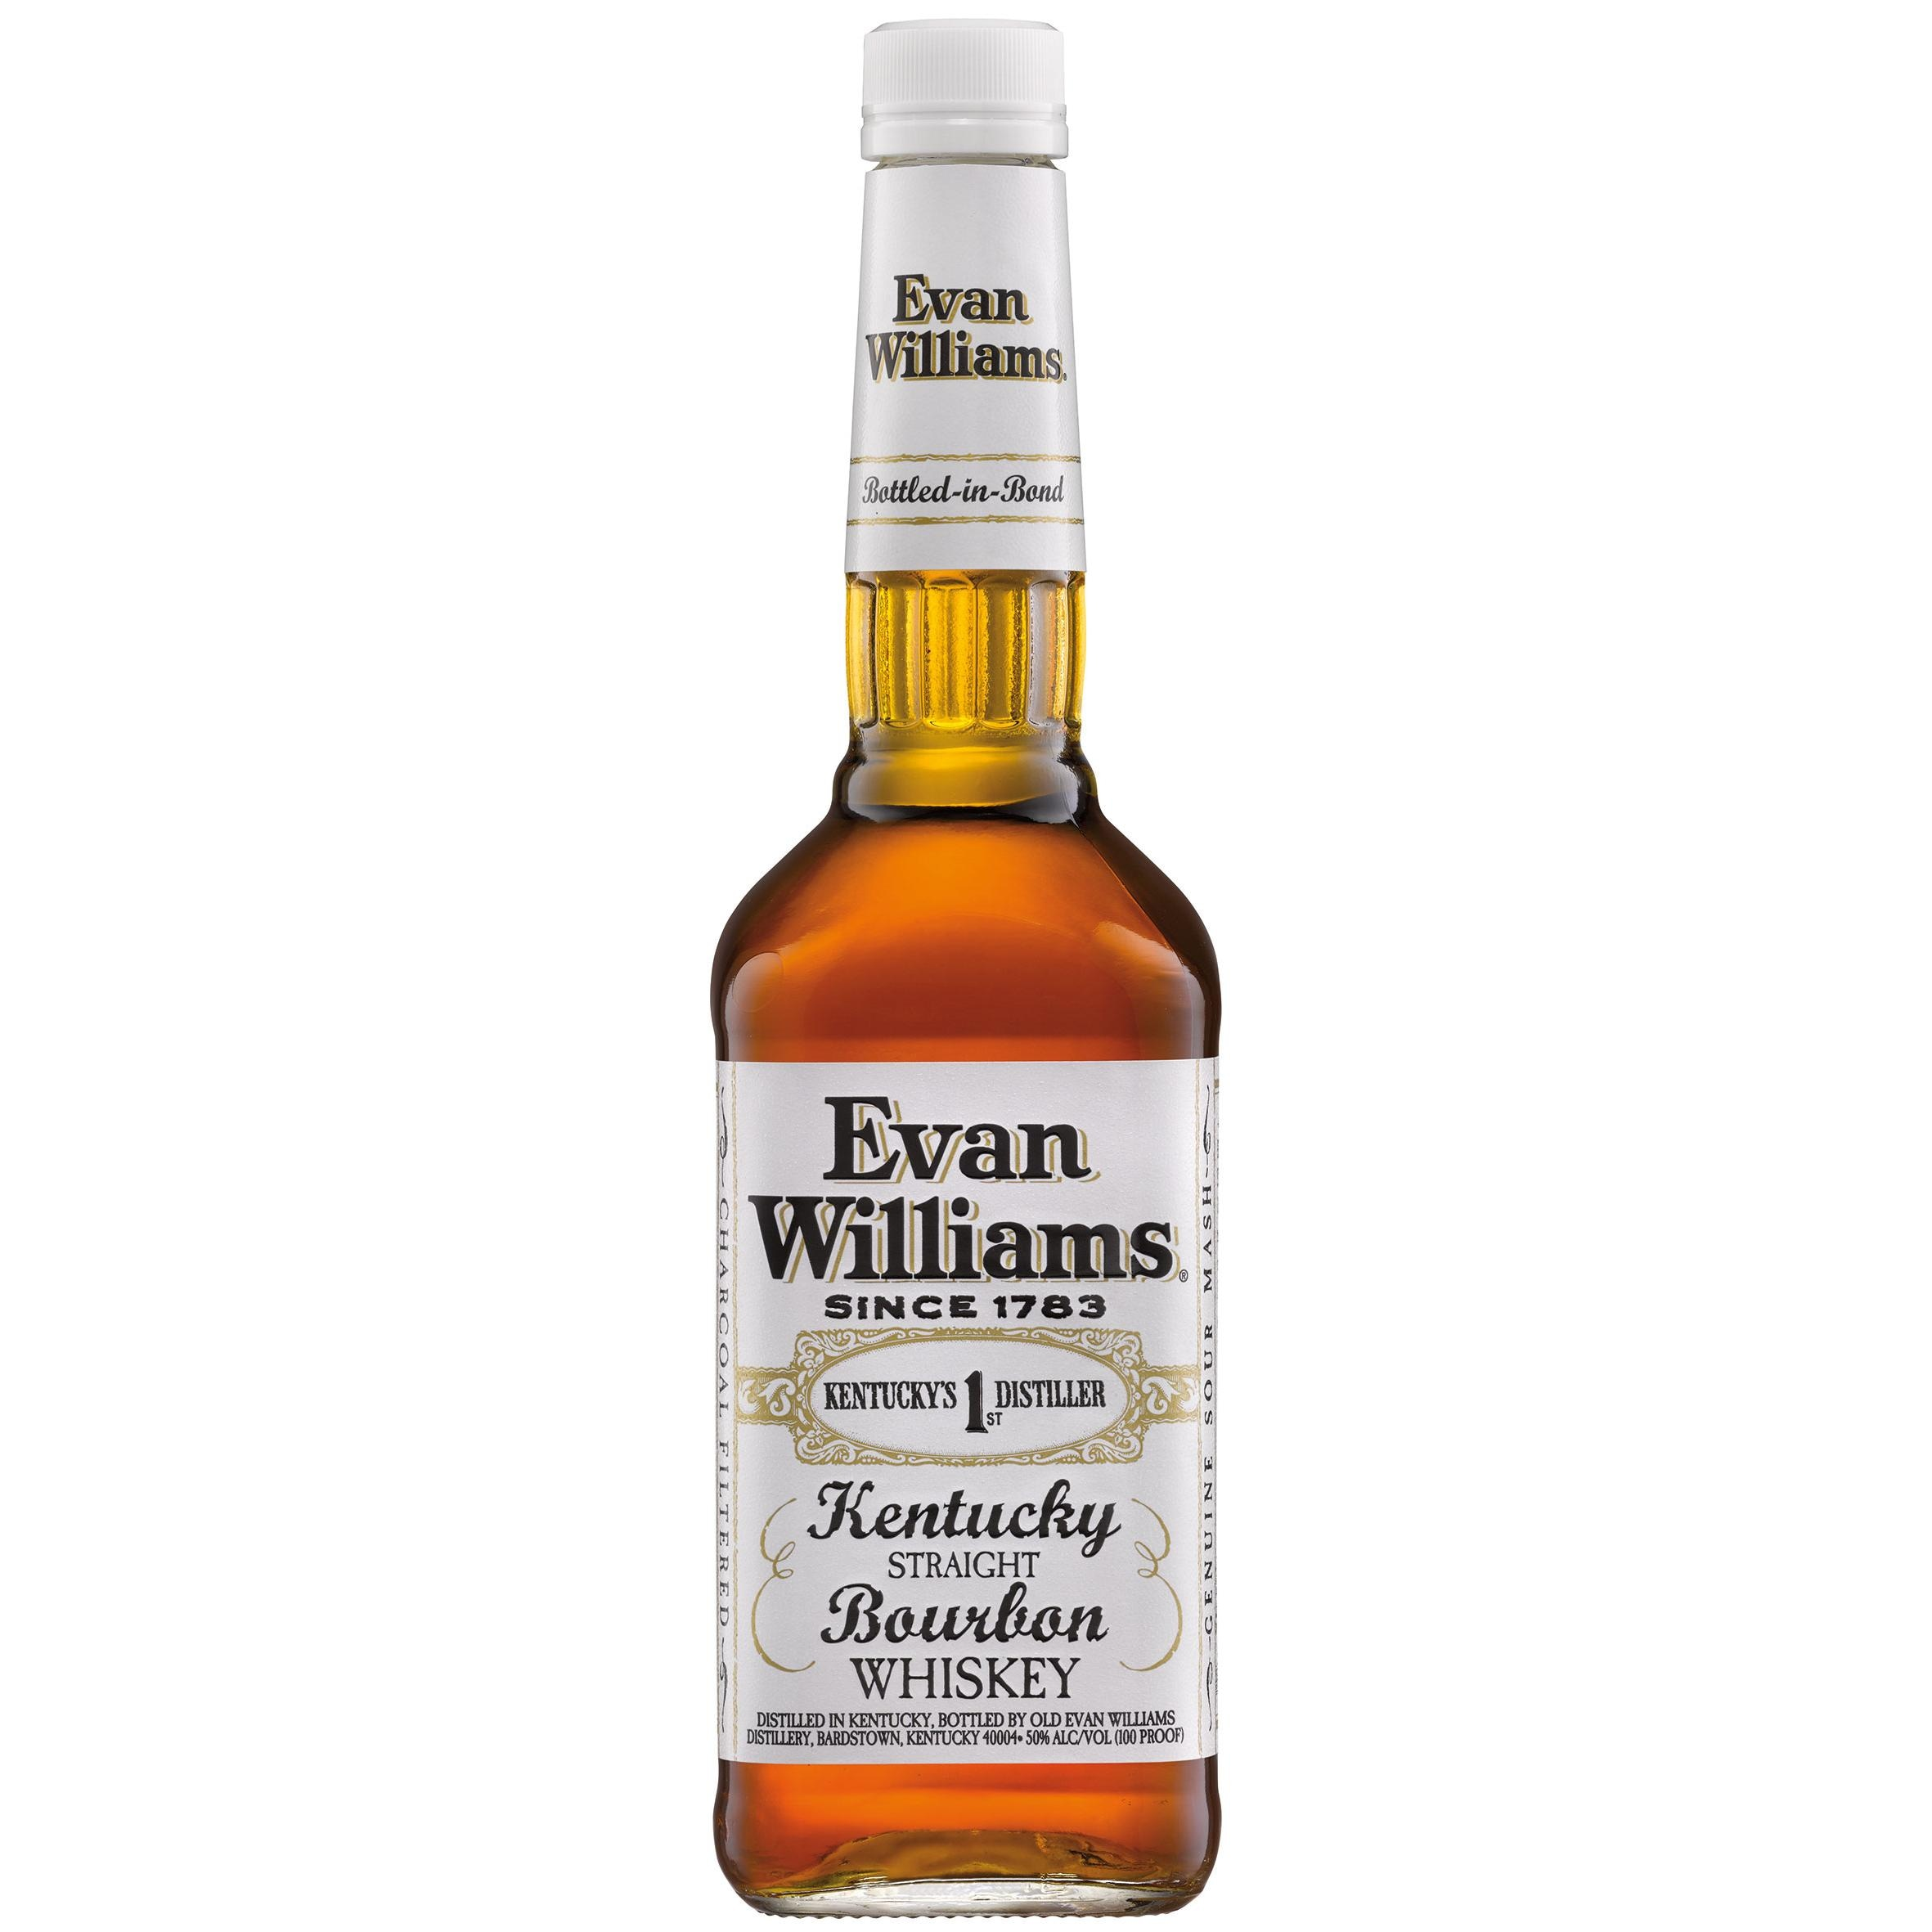 Evan Williams Kentucky Straight Bourbon Whisky 0,7l